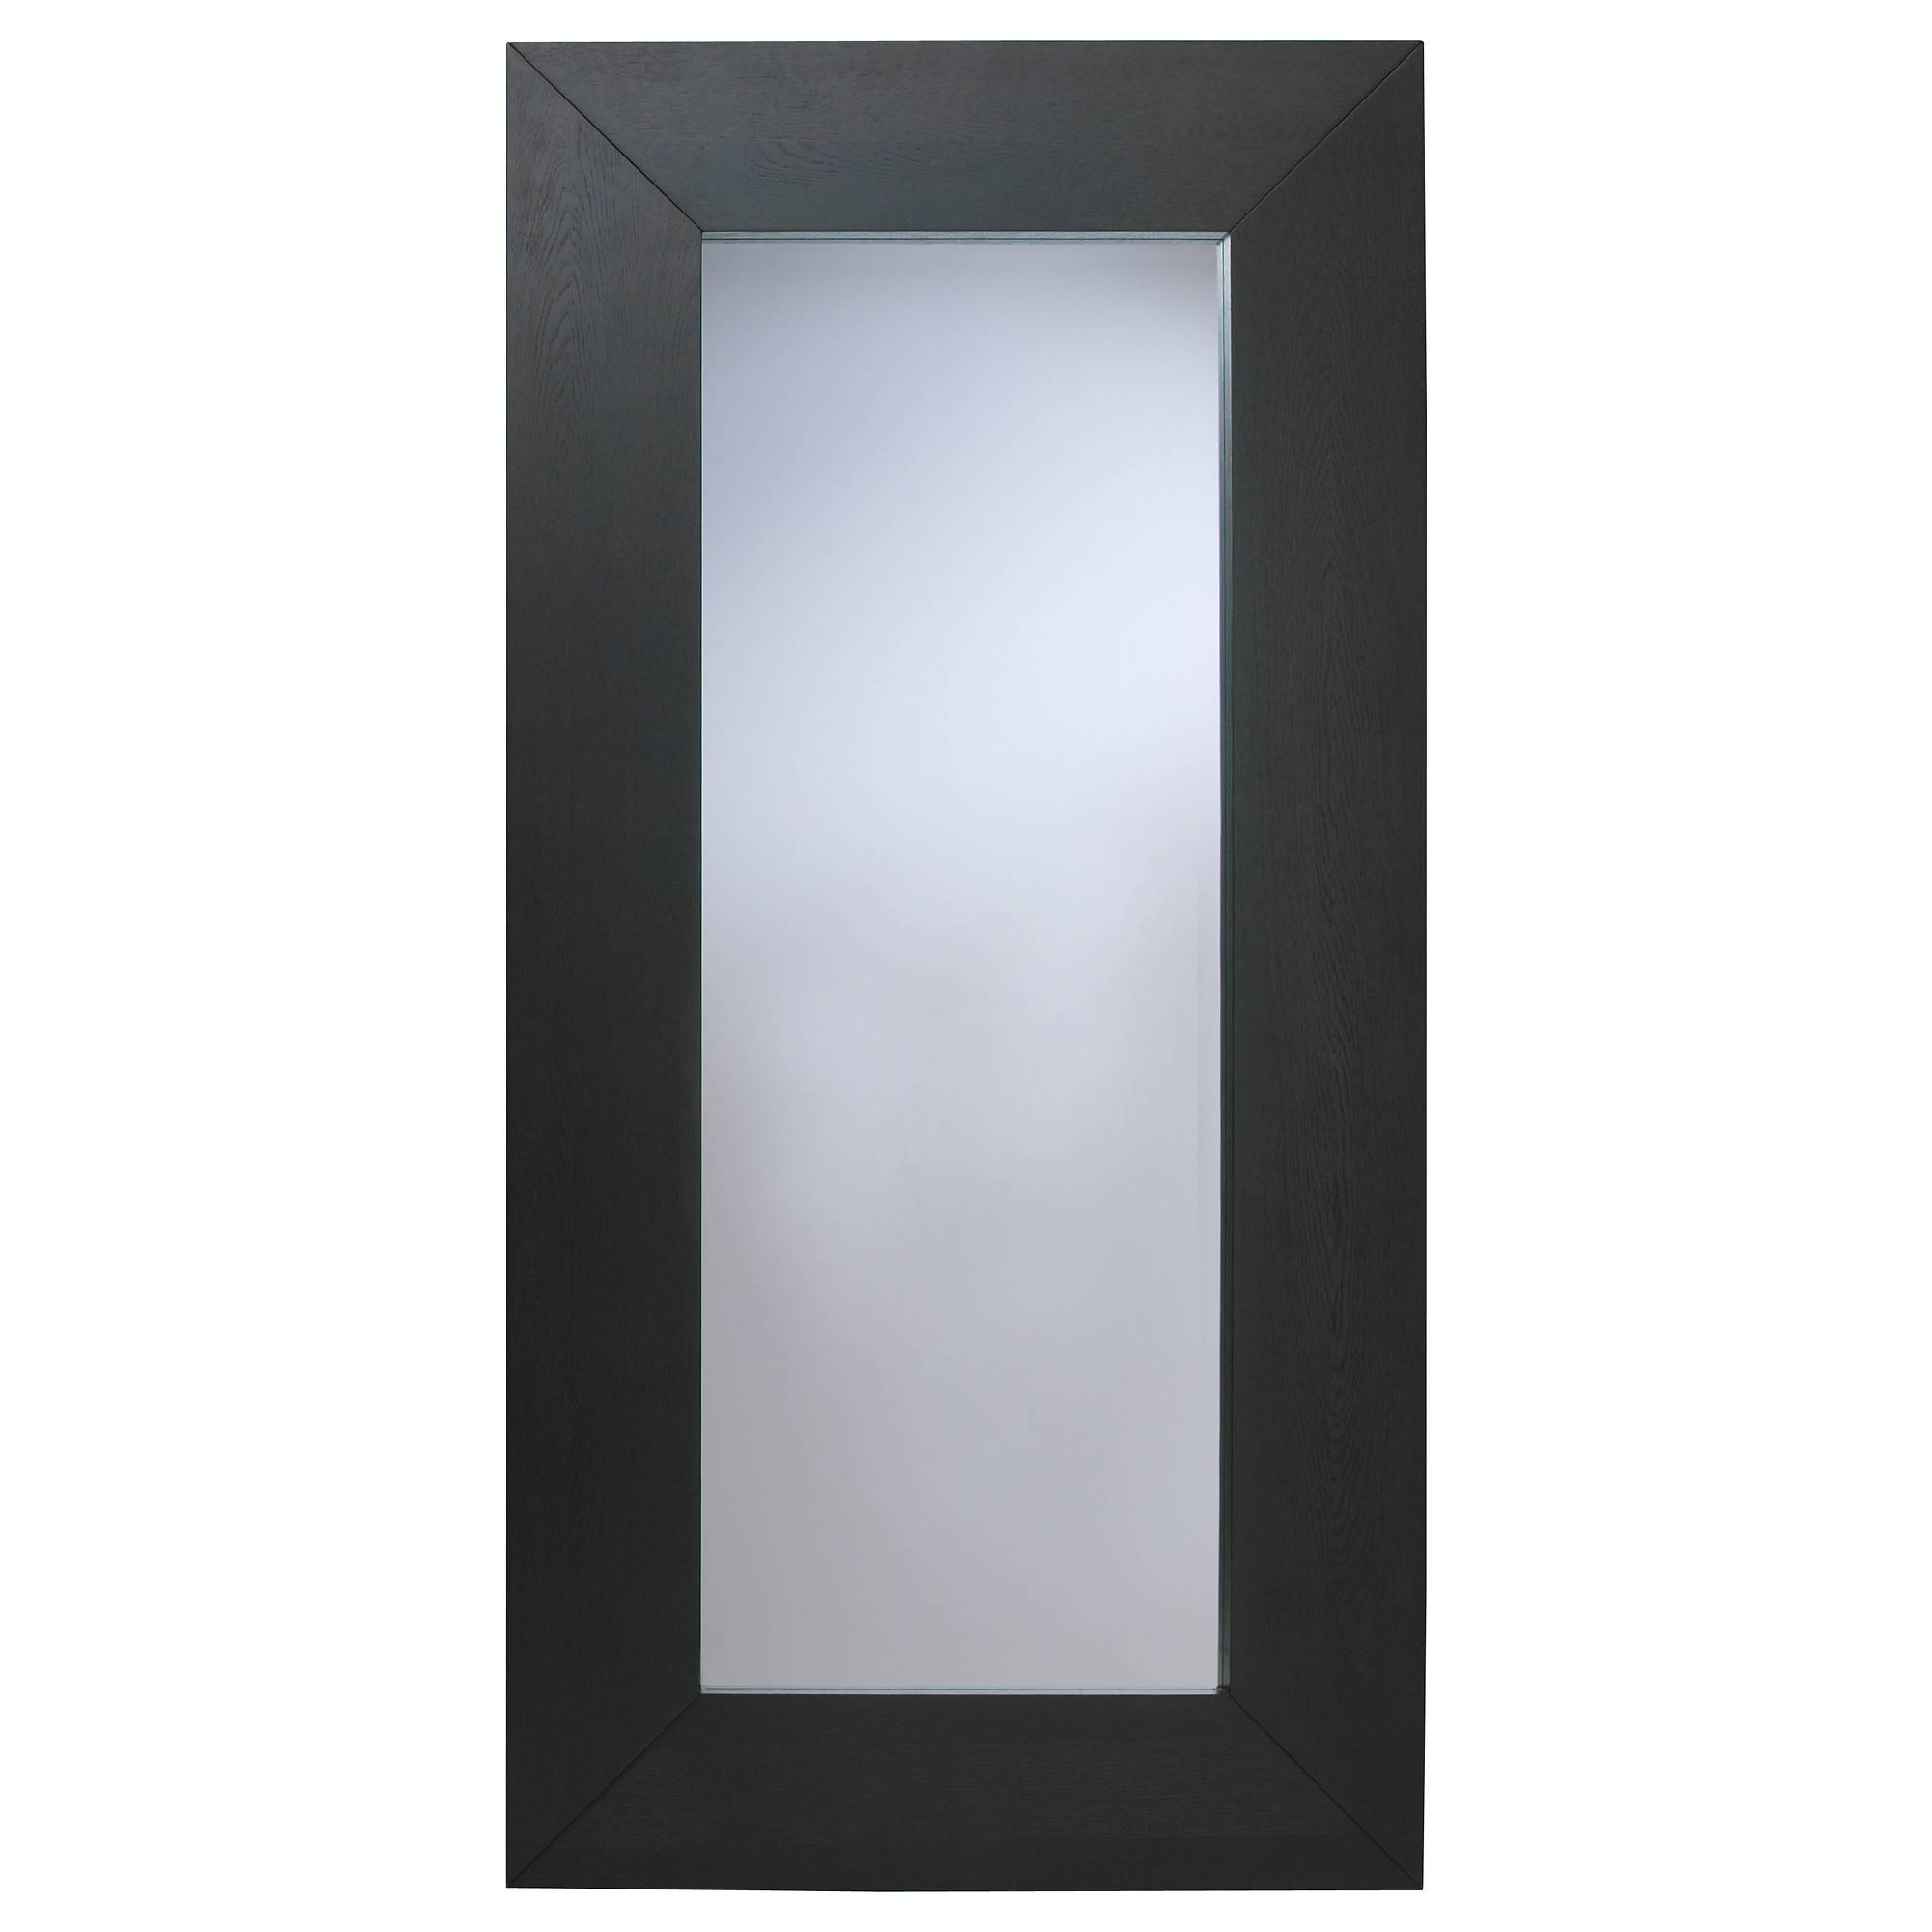 Full-Length Mirrors - Ikea for Large Floor Length Mirrors (Image 16 of 25)